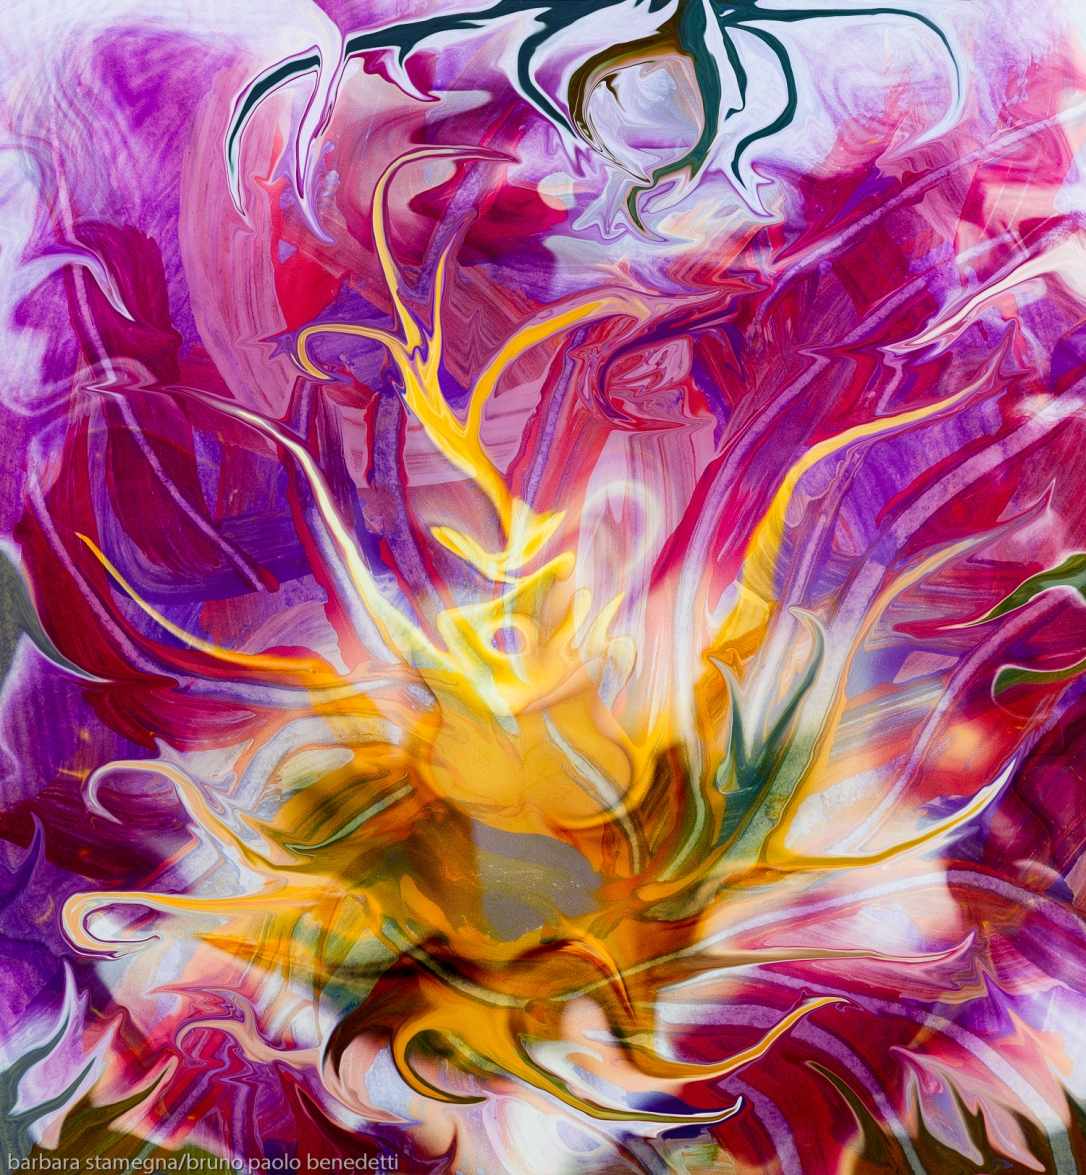 yellow fluid abstract flower: multicolored image with central yellow abstract fluid flower